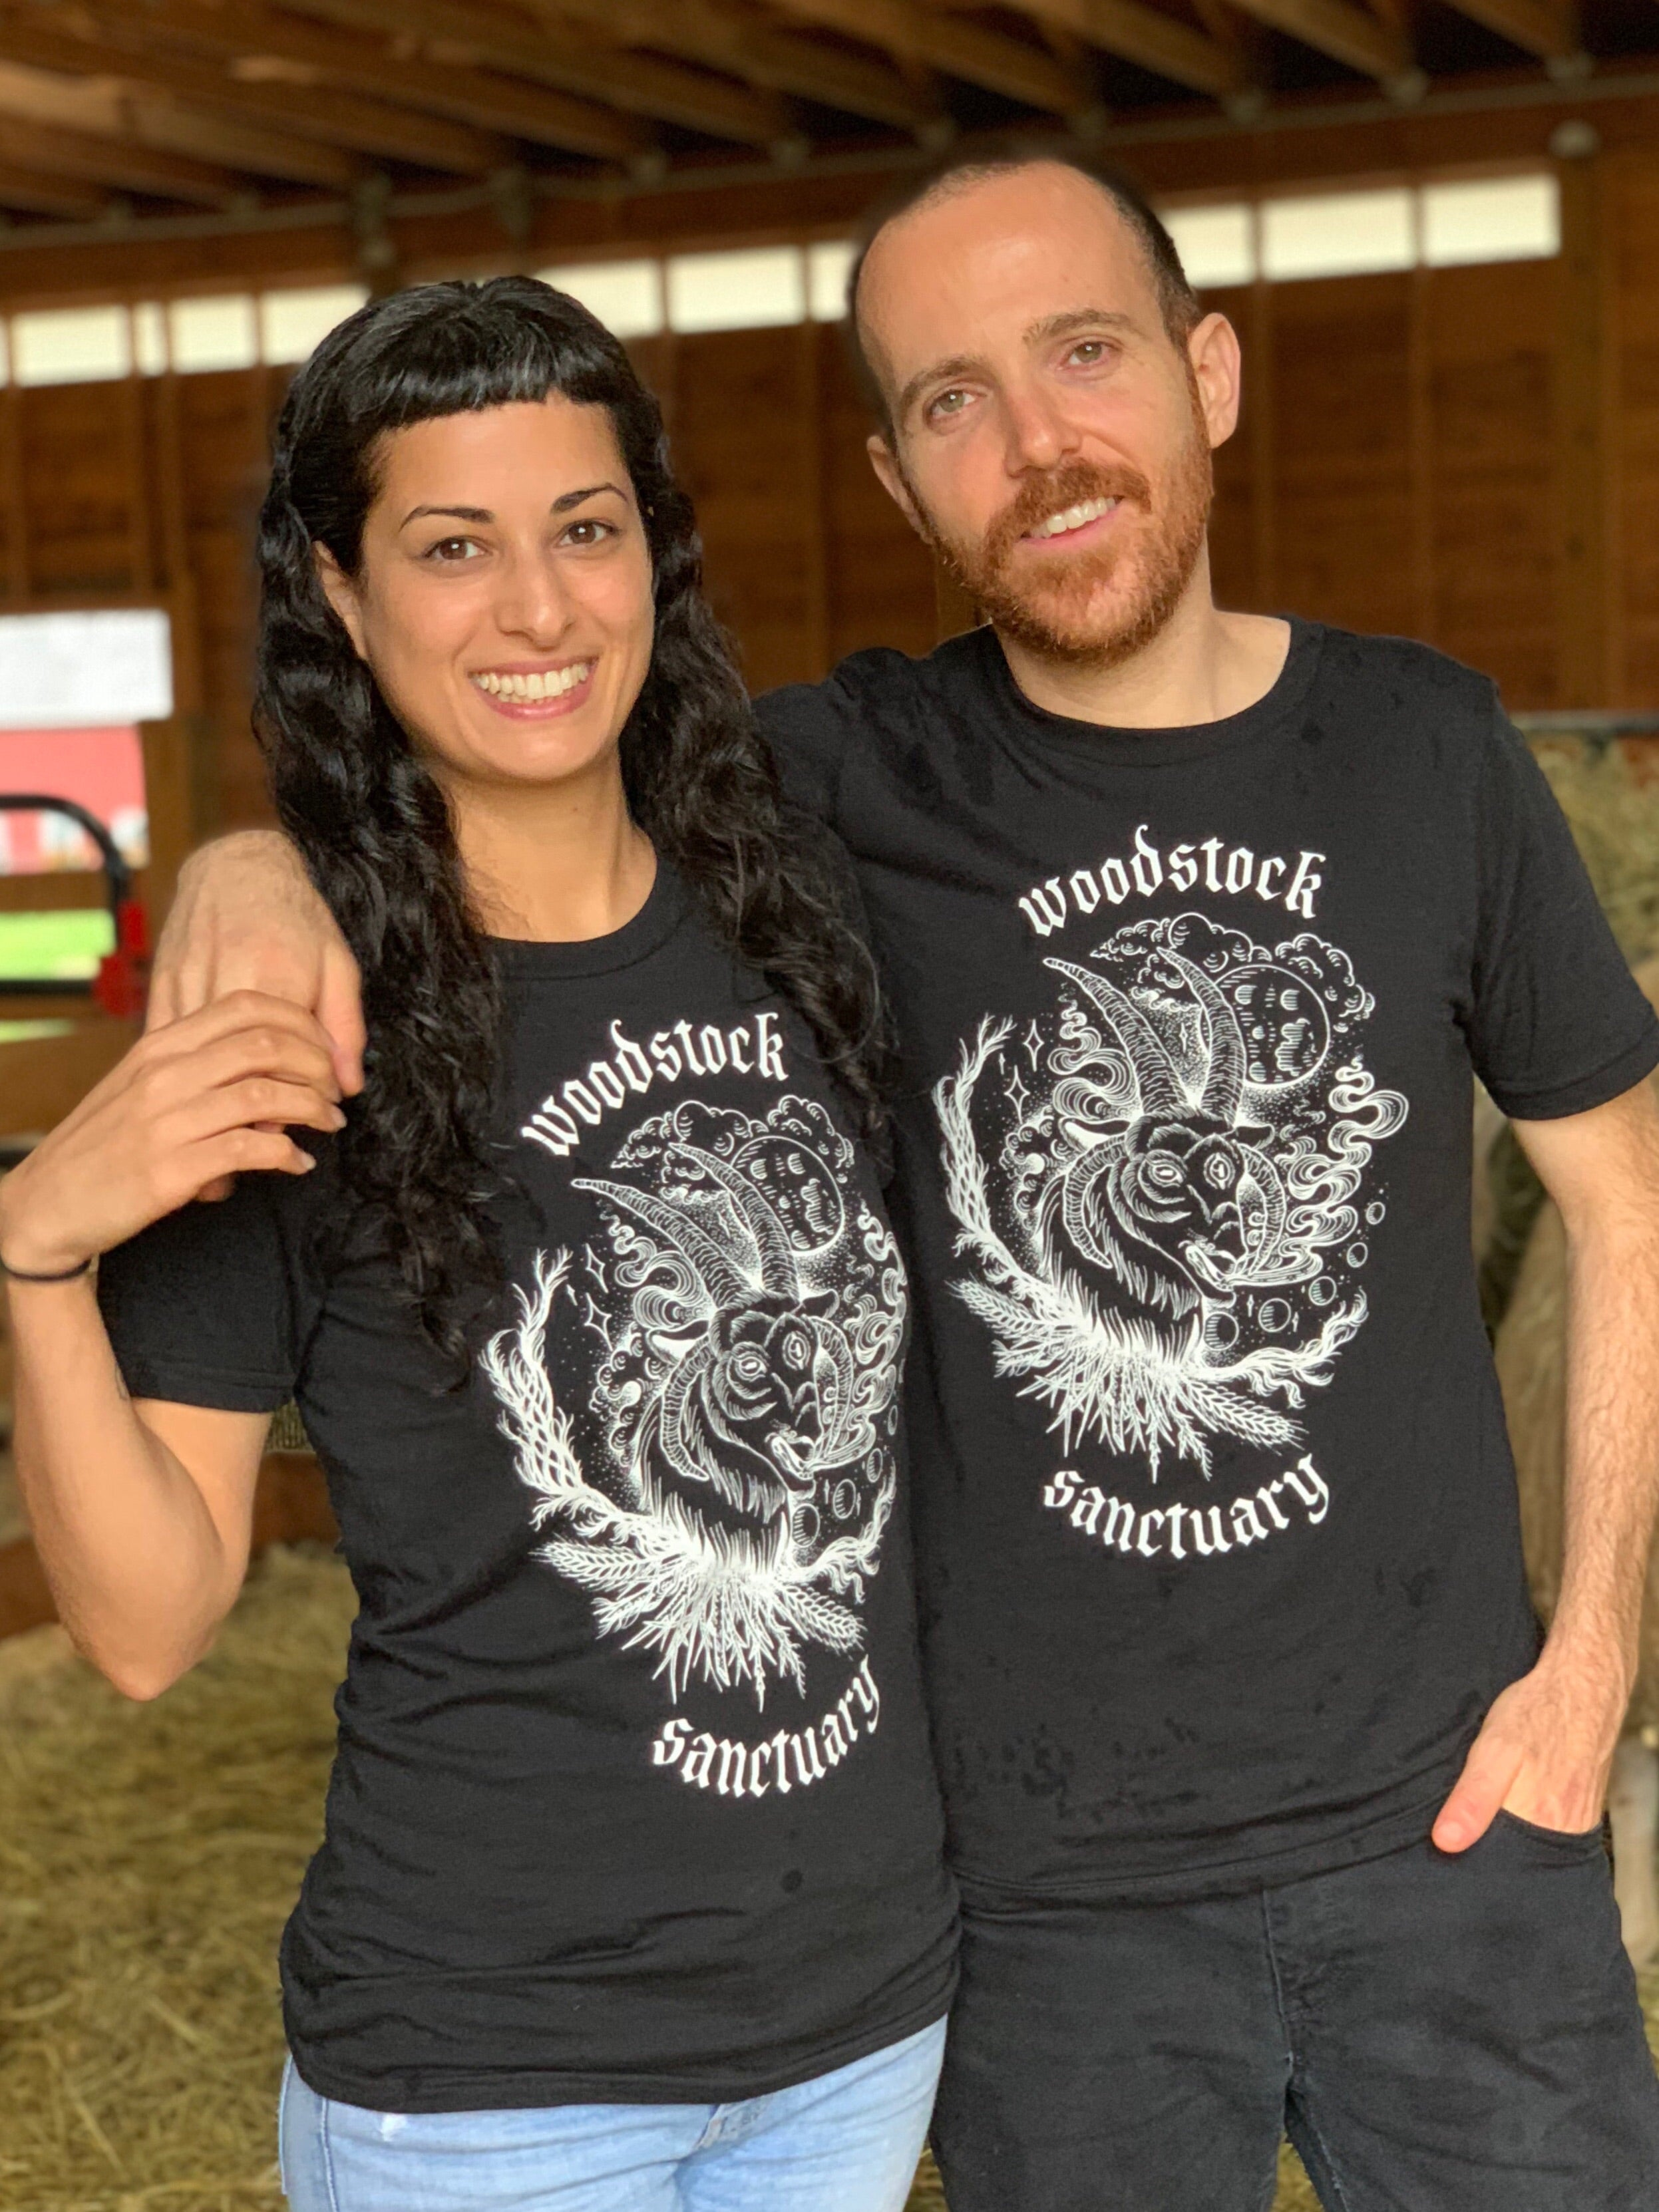 GRISTLE x WOODSTOCK SANCTUARY Collab Shirt